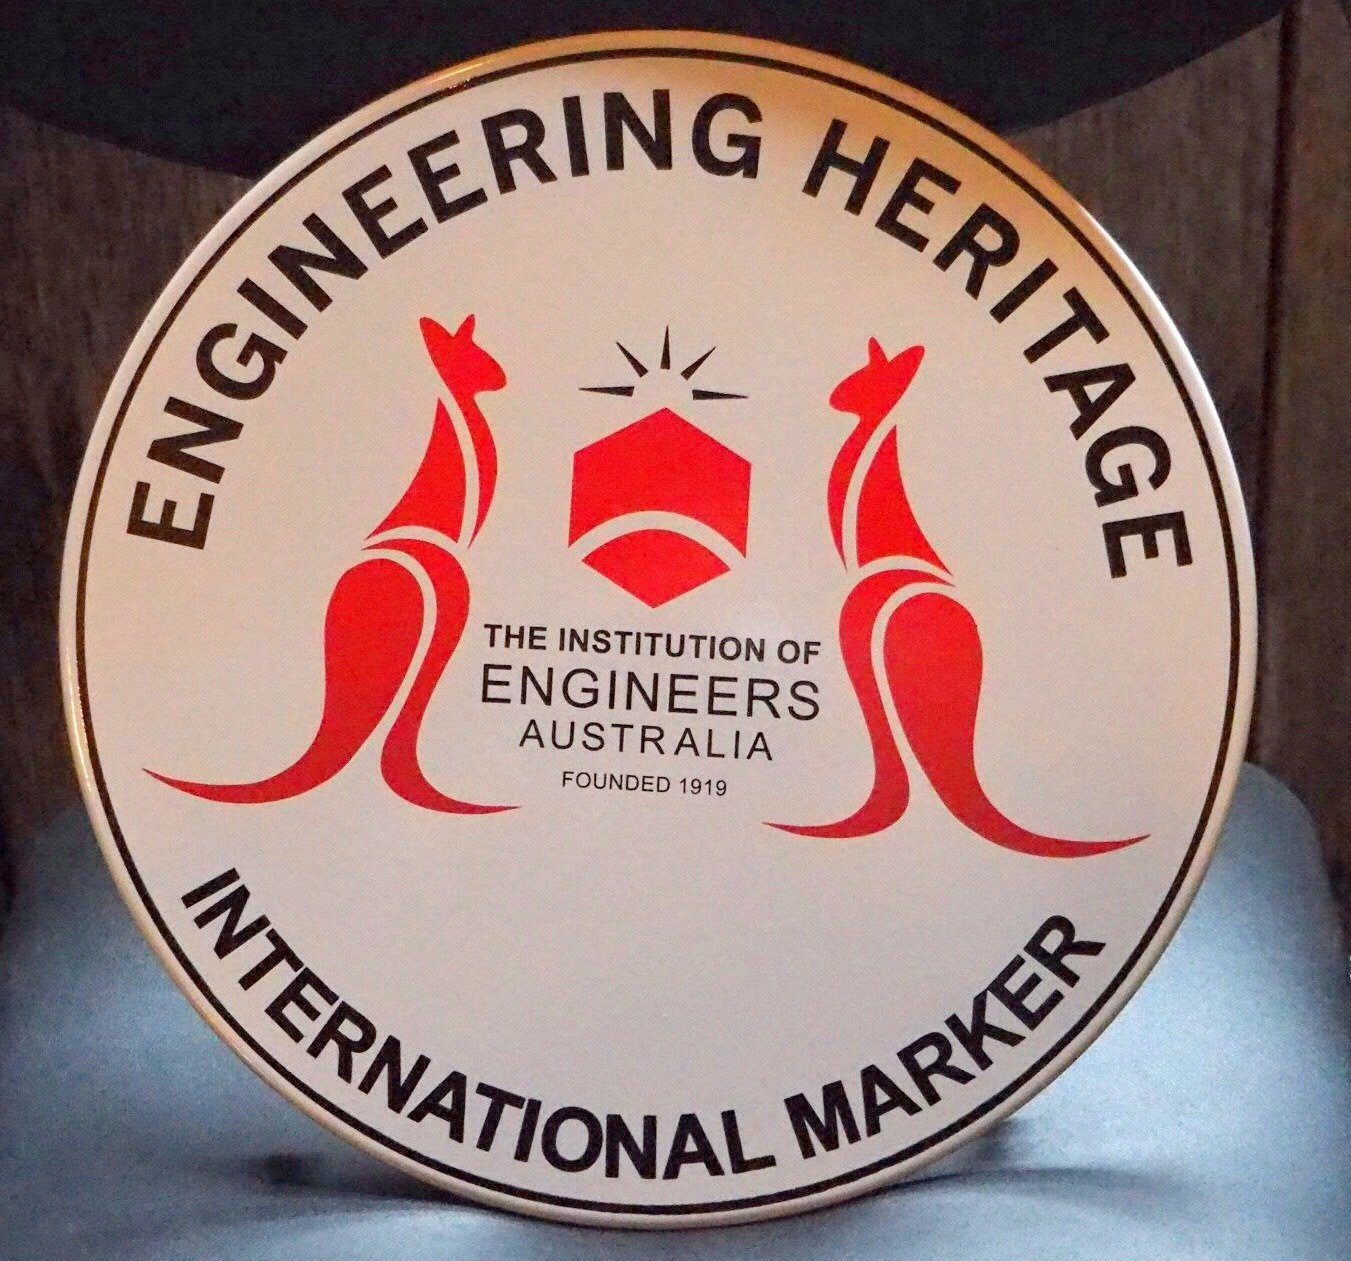 The Engineering Heritage International Marker, presented to the West Coast Wilderness Railway in recognition of its significance as an engineering feat of global importance.